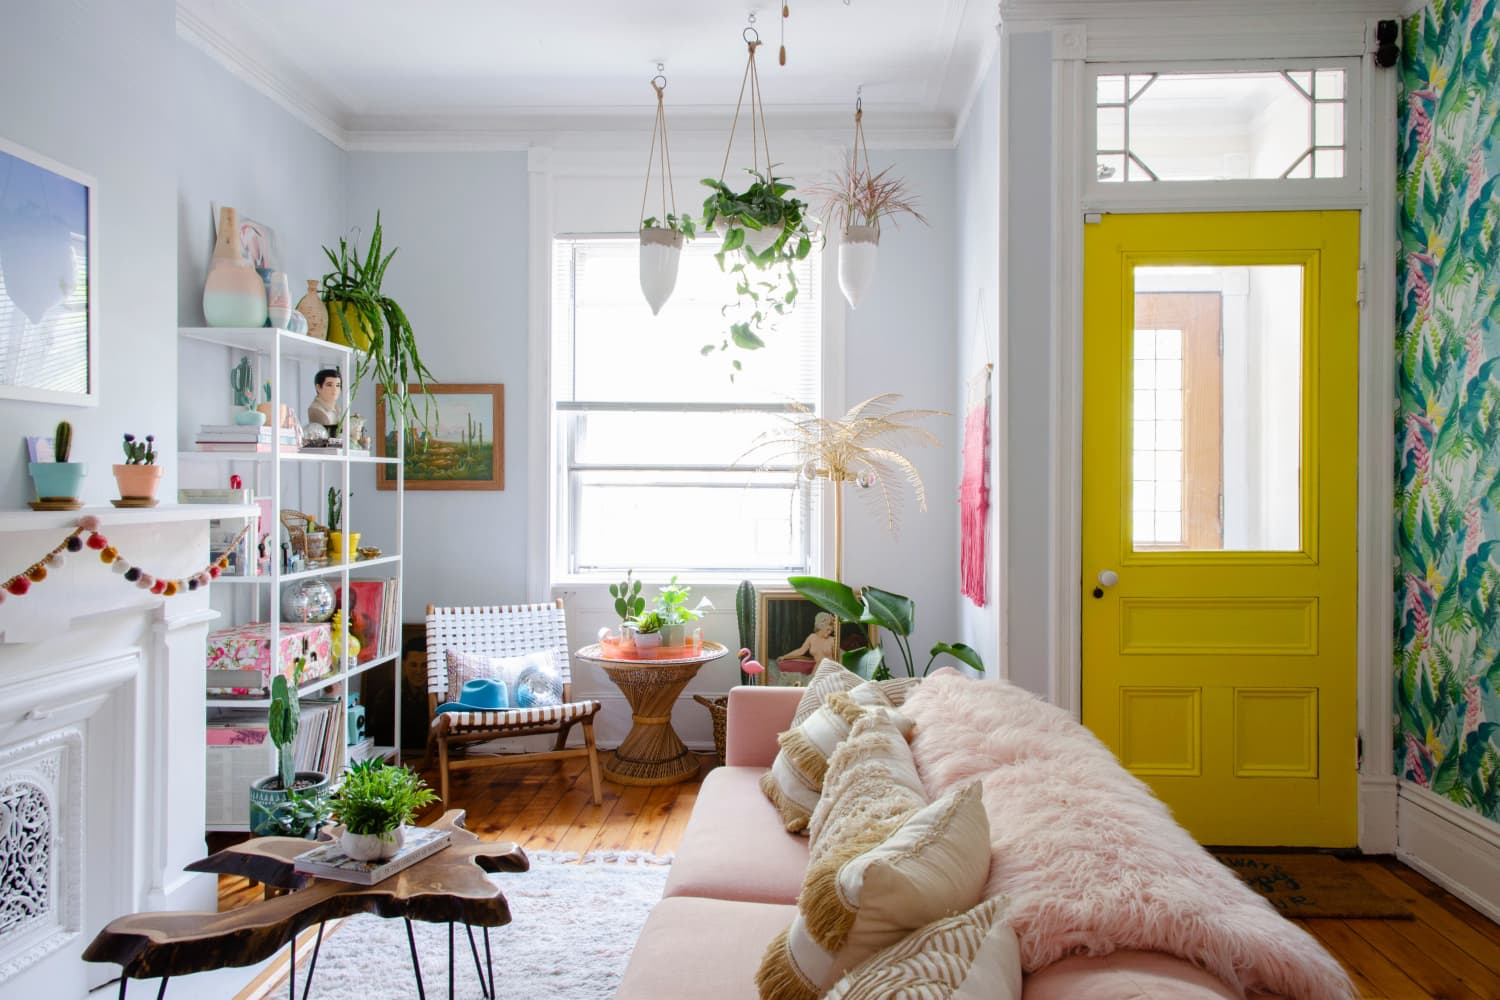 Give Your Home a Little Refresher by Painting this Often-Overlooked Spot